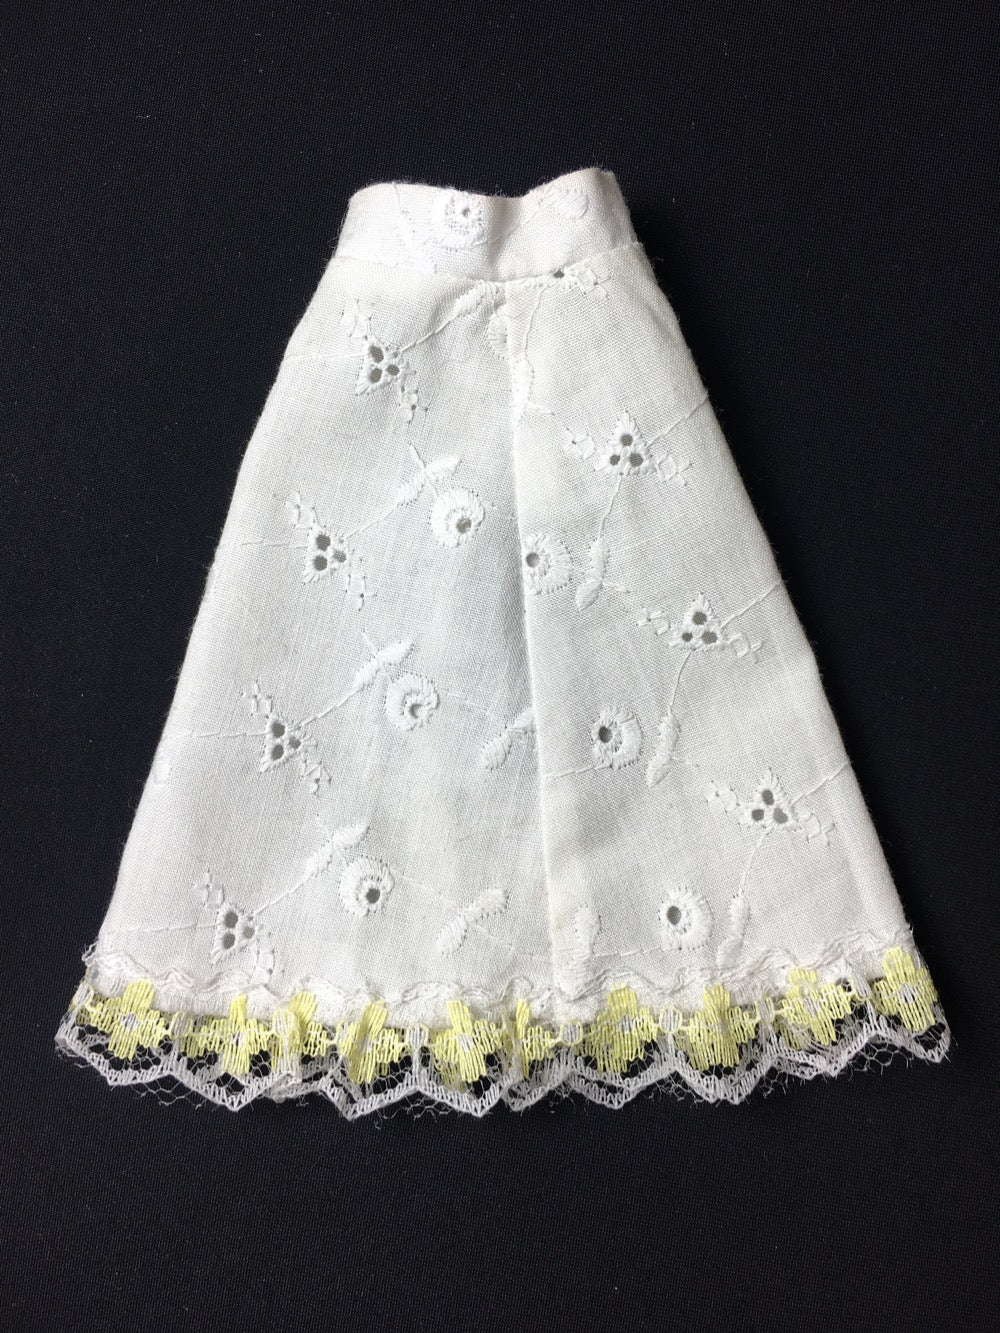 Sindy Smarty Pants petticoat skirt 1979 Pedigree 44200 white broderie anglaise